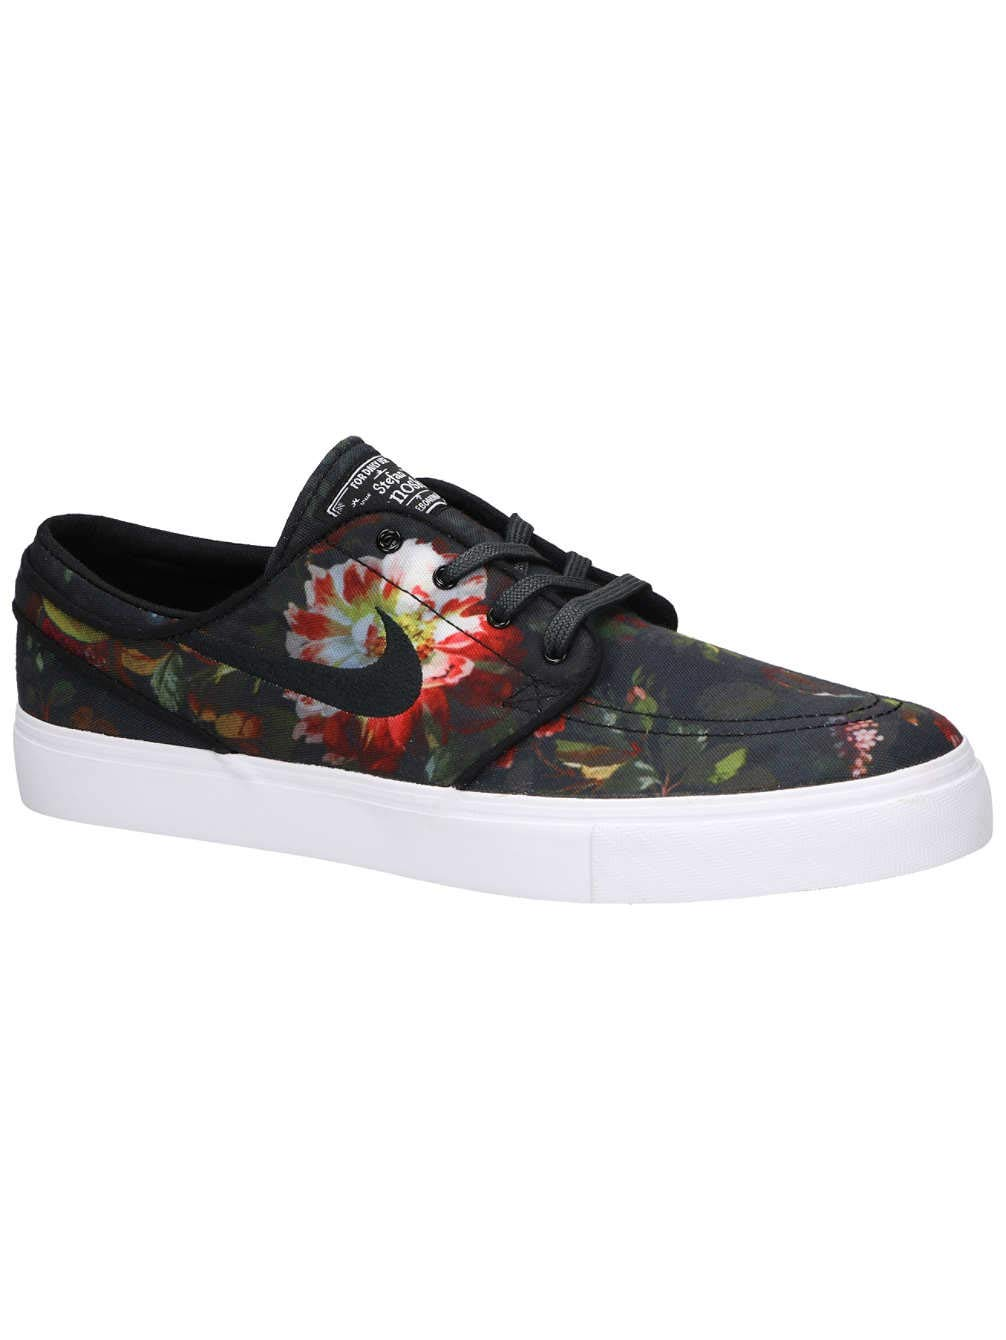 2d5cbf007cfb Galleon - Nike SB Zoom Stefan Janoski Canvas (9.5 D US